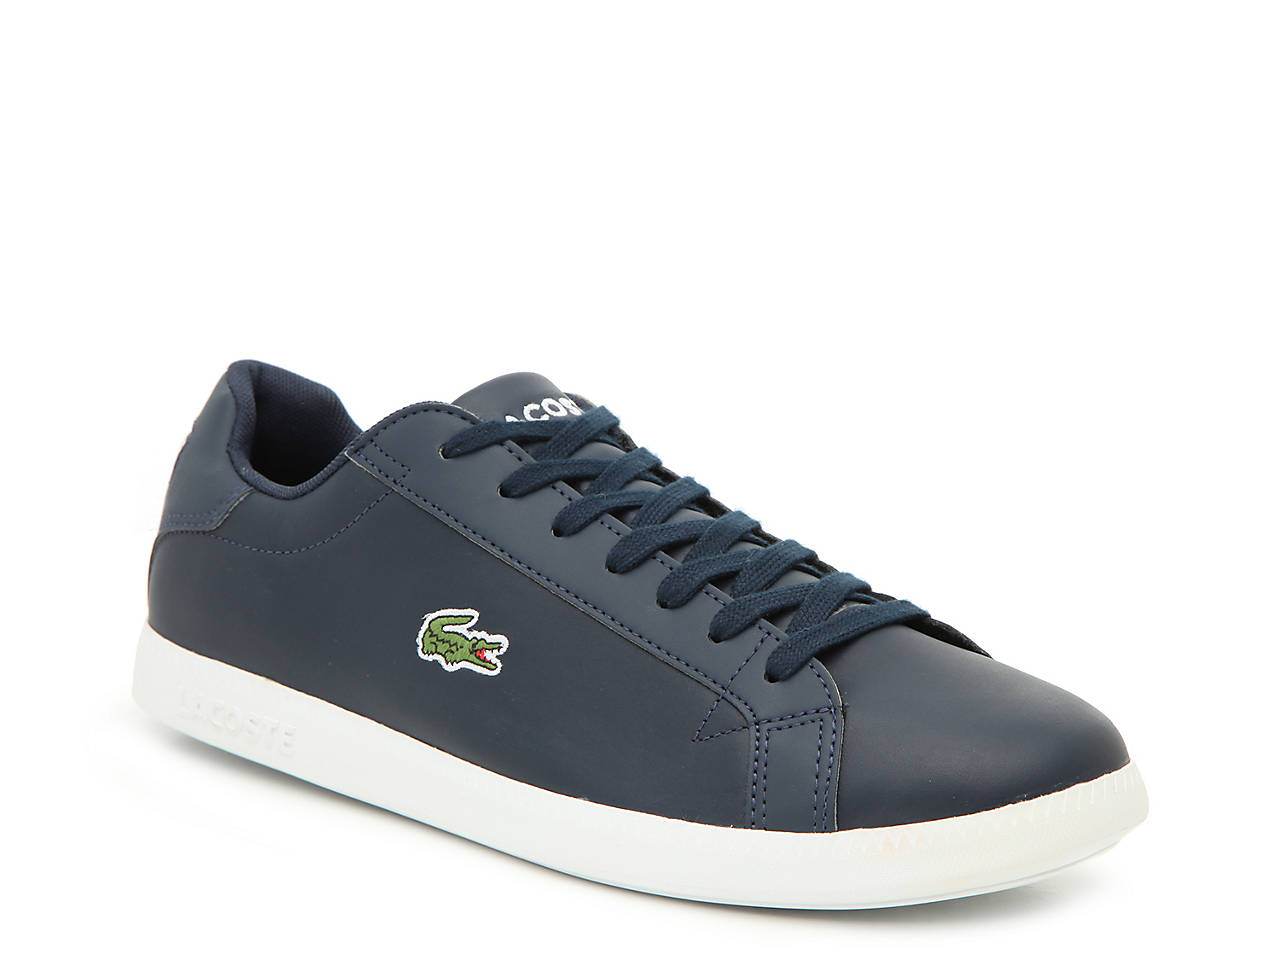 a69b9ed612e8 Lacoste Graduate Sneaker Men s Shoes